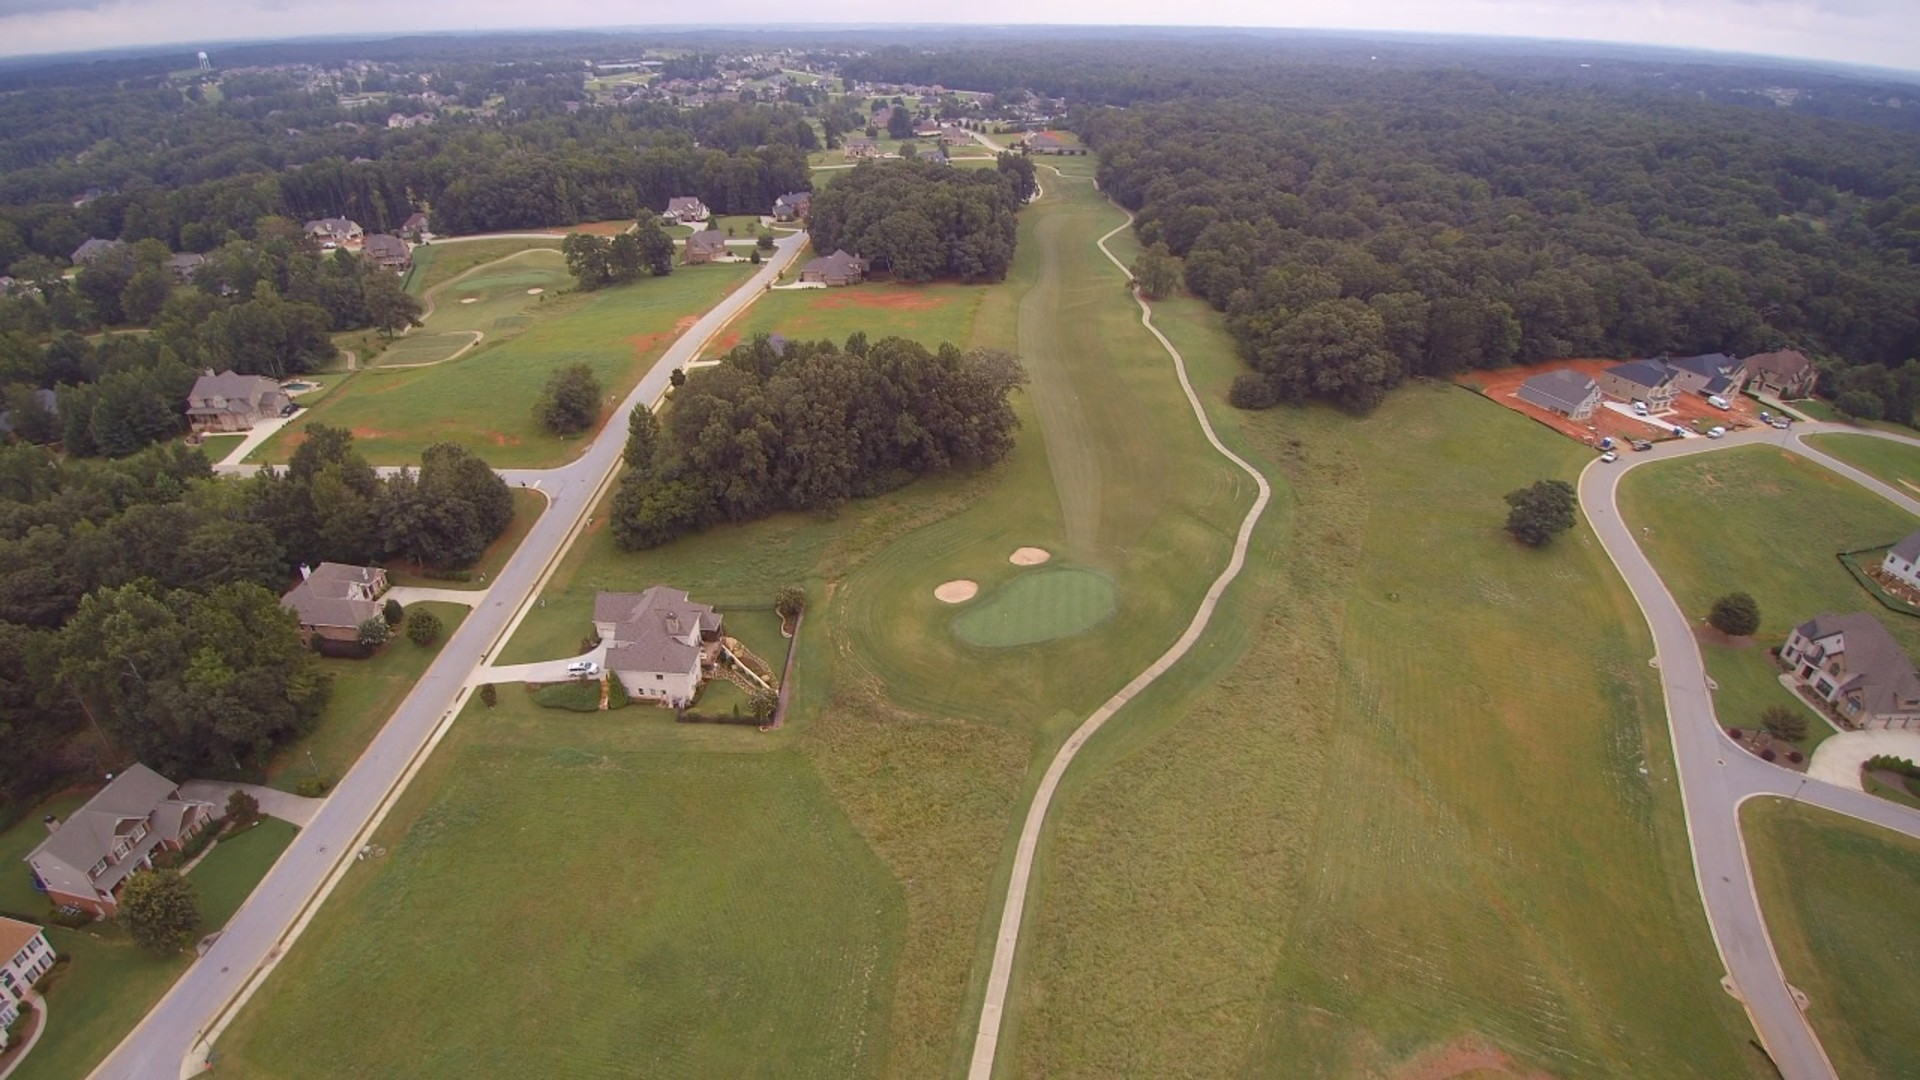 Drone_Golf_TraditionsOfB00120171103170153